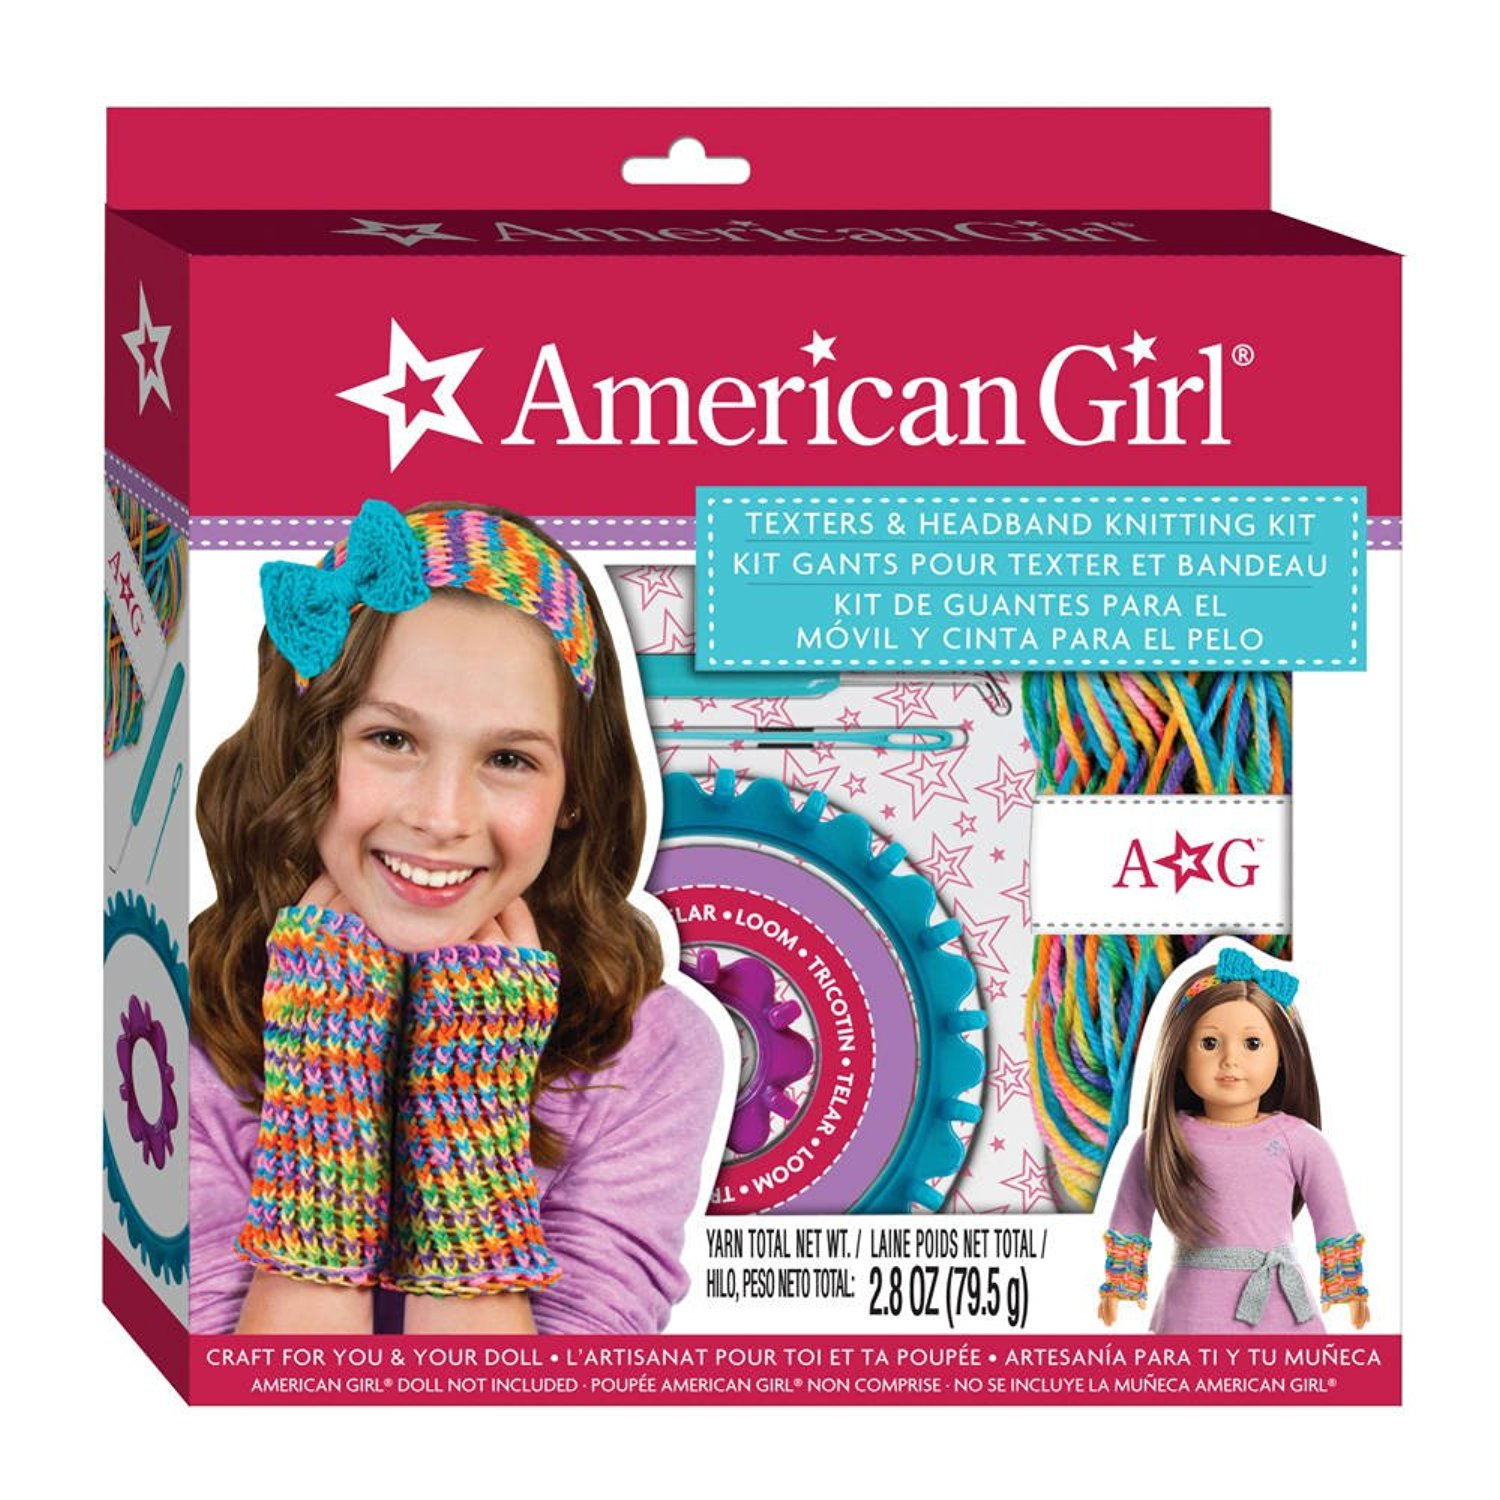 real-nude-craft-kits-for-teen-girls-using-tampon-naked